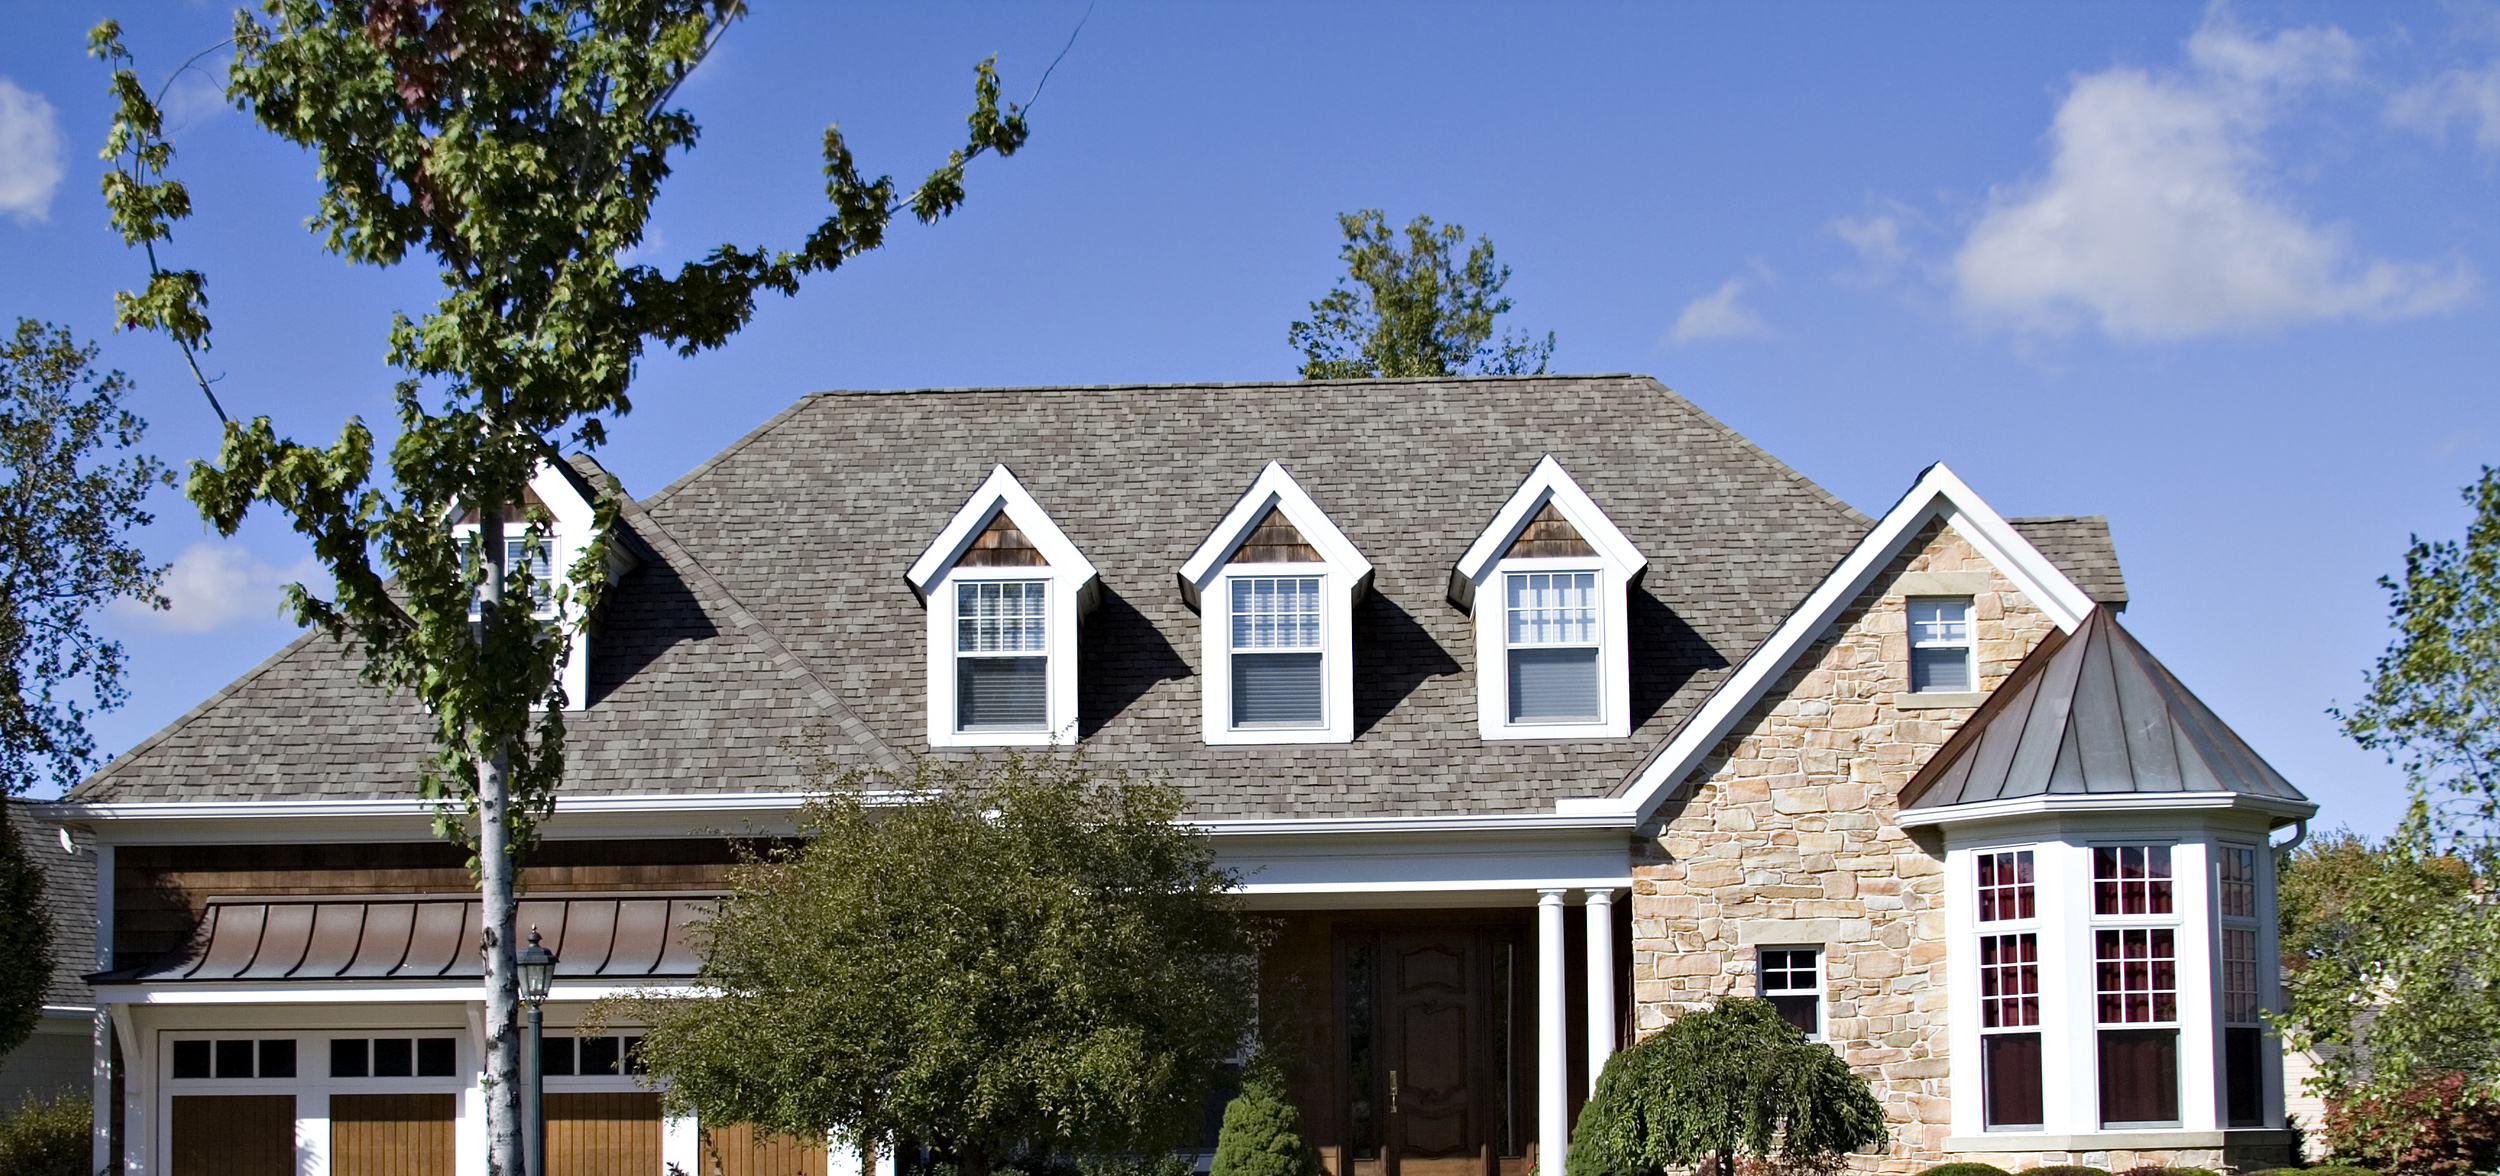 homer glen roof inspection